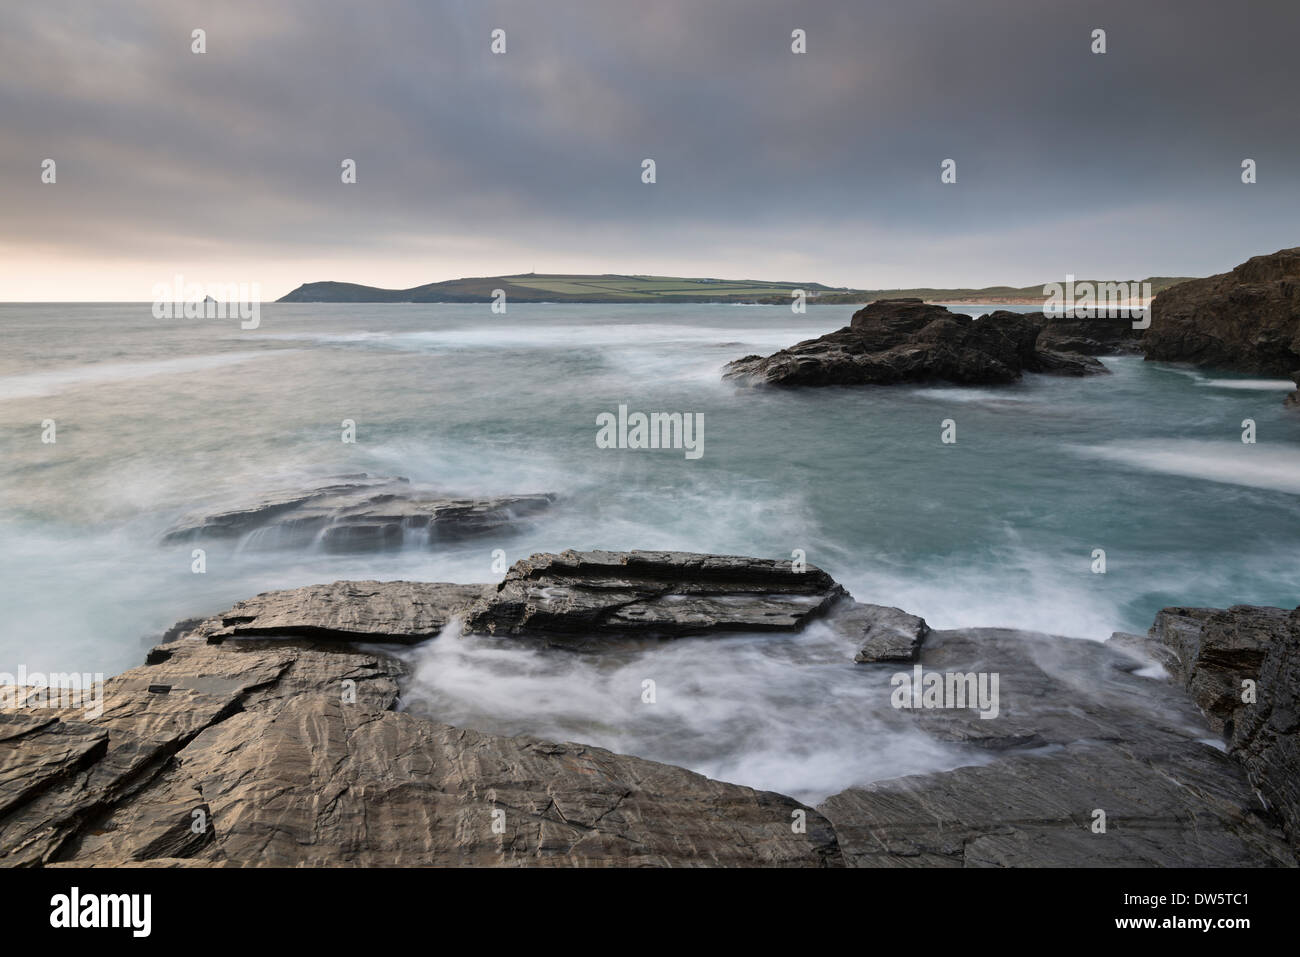 Trevose Head from Treyarnon Point, Cornwall, England. Summer (June) 2013. - Stock Image